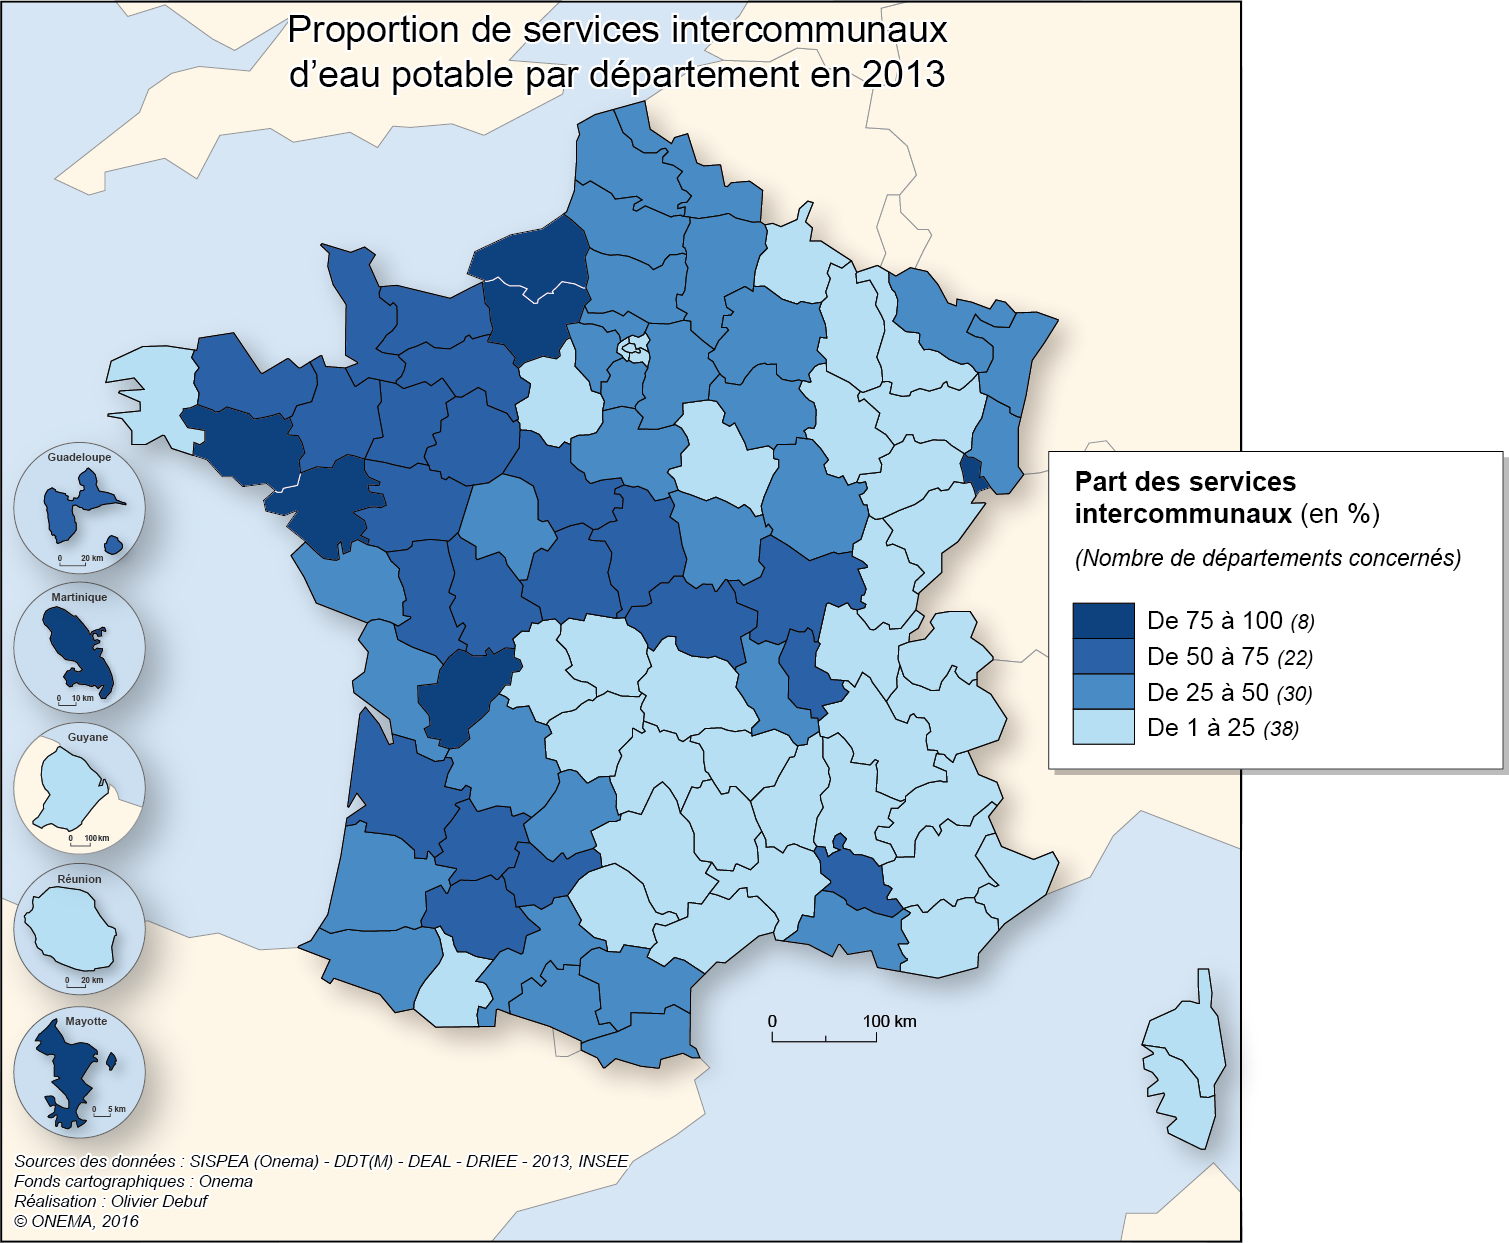 3)	Proportion de services intercommunaux d'eau potable en 2013